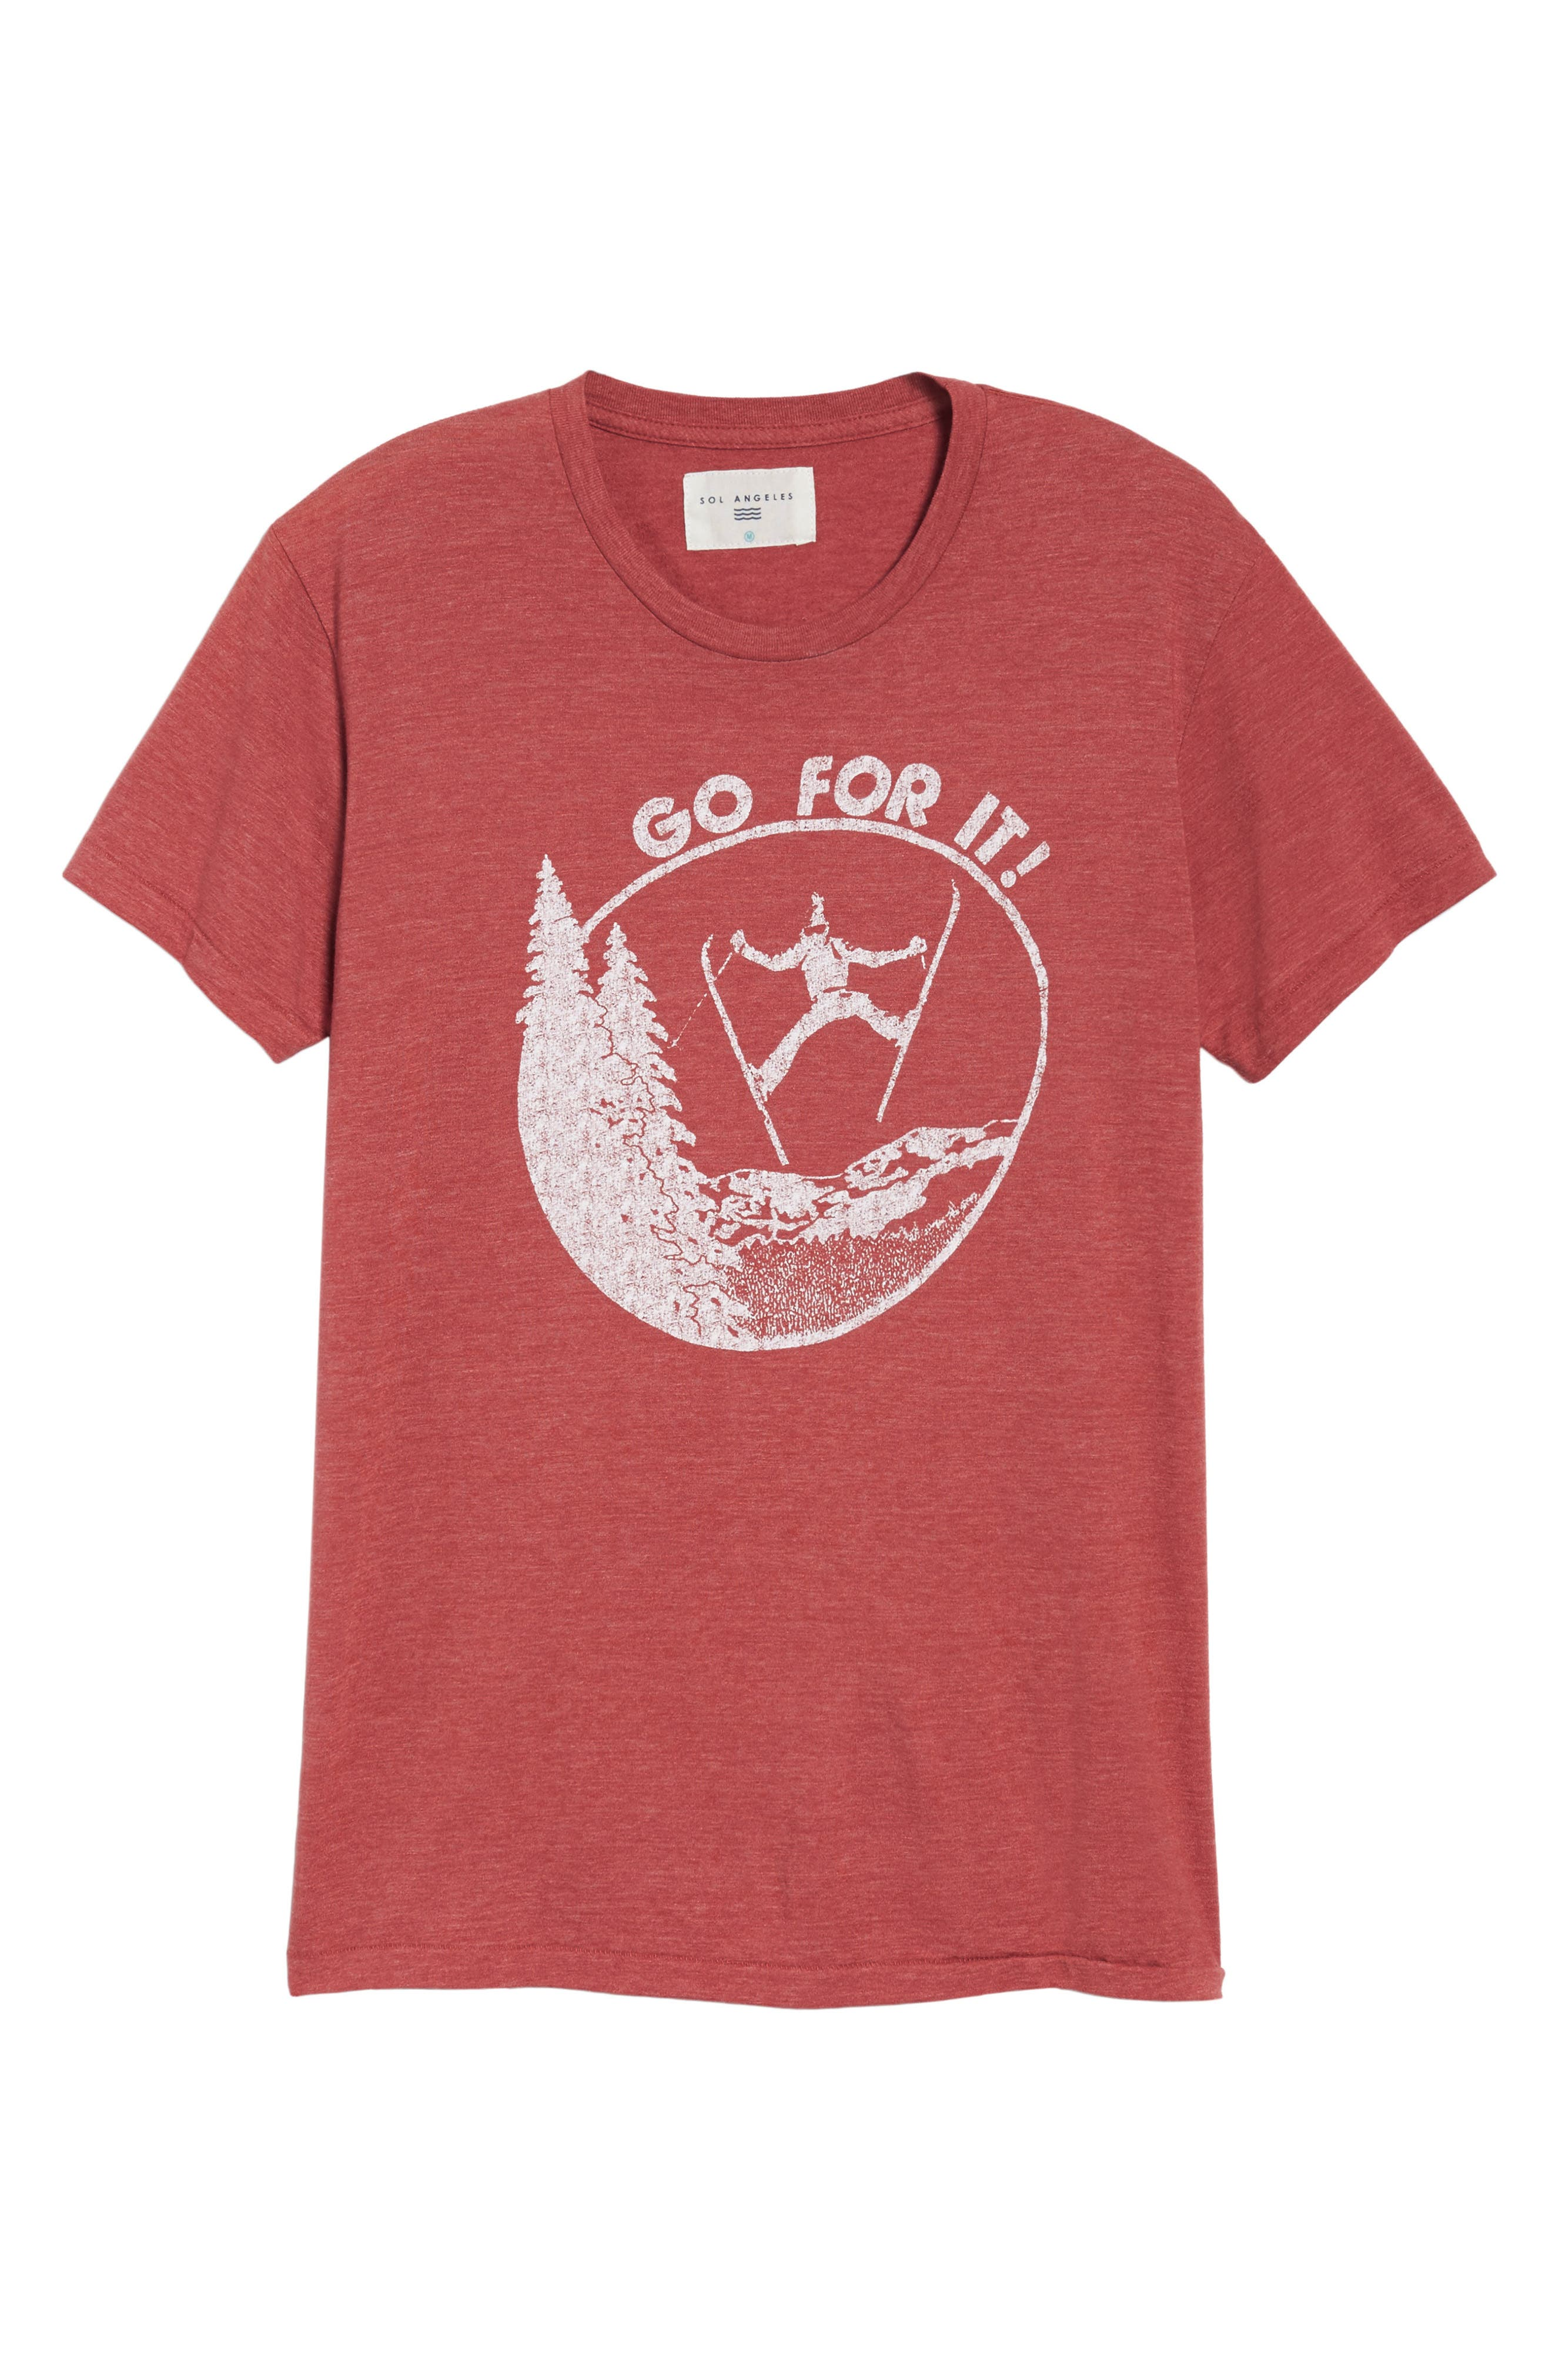 Go for It Graphic T-Shirt,                             Alternate thumbnail 6, color,                             610